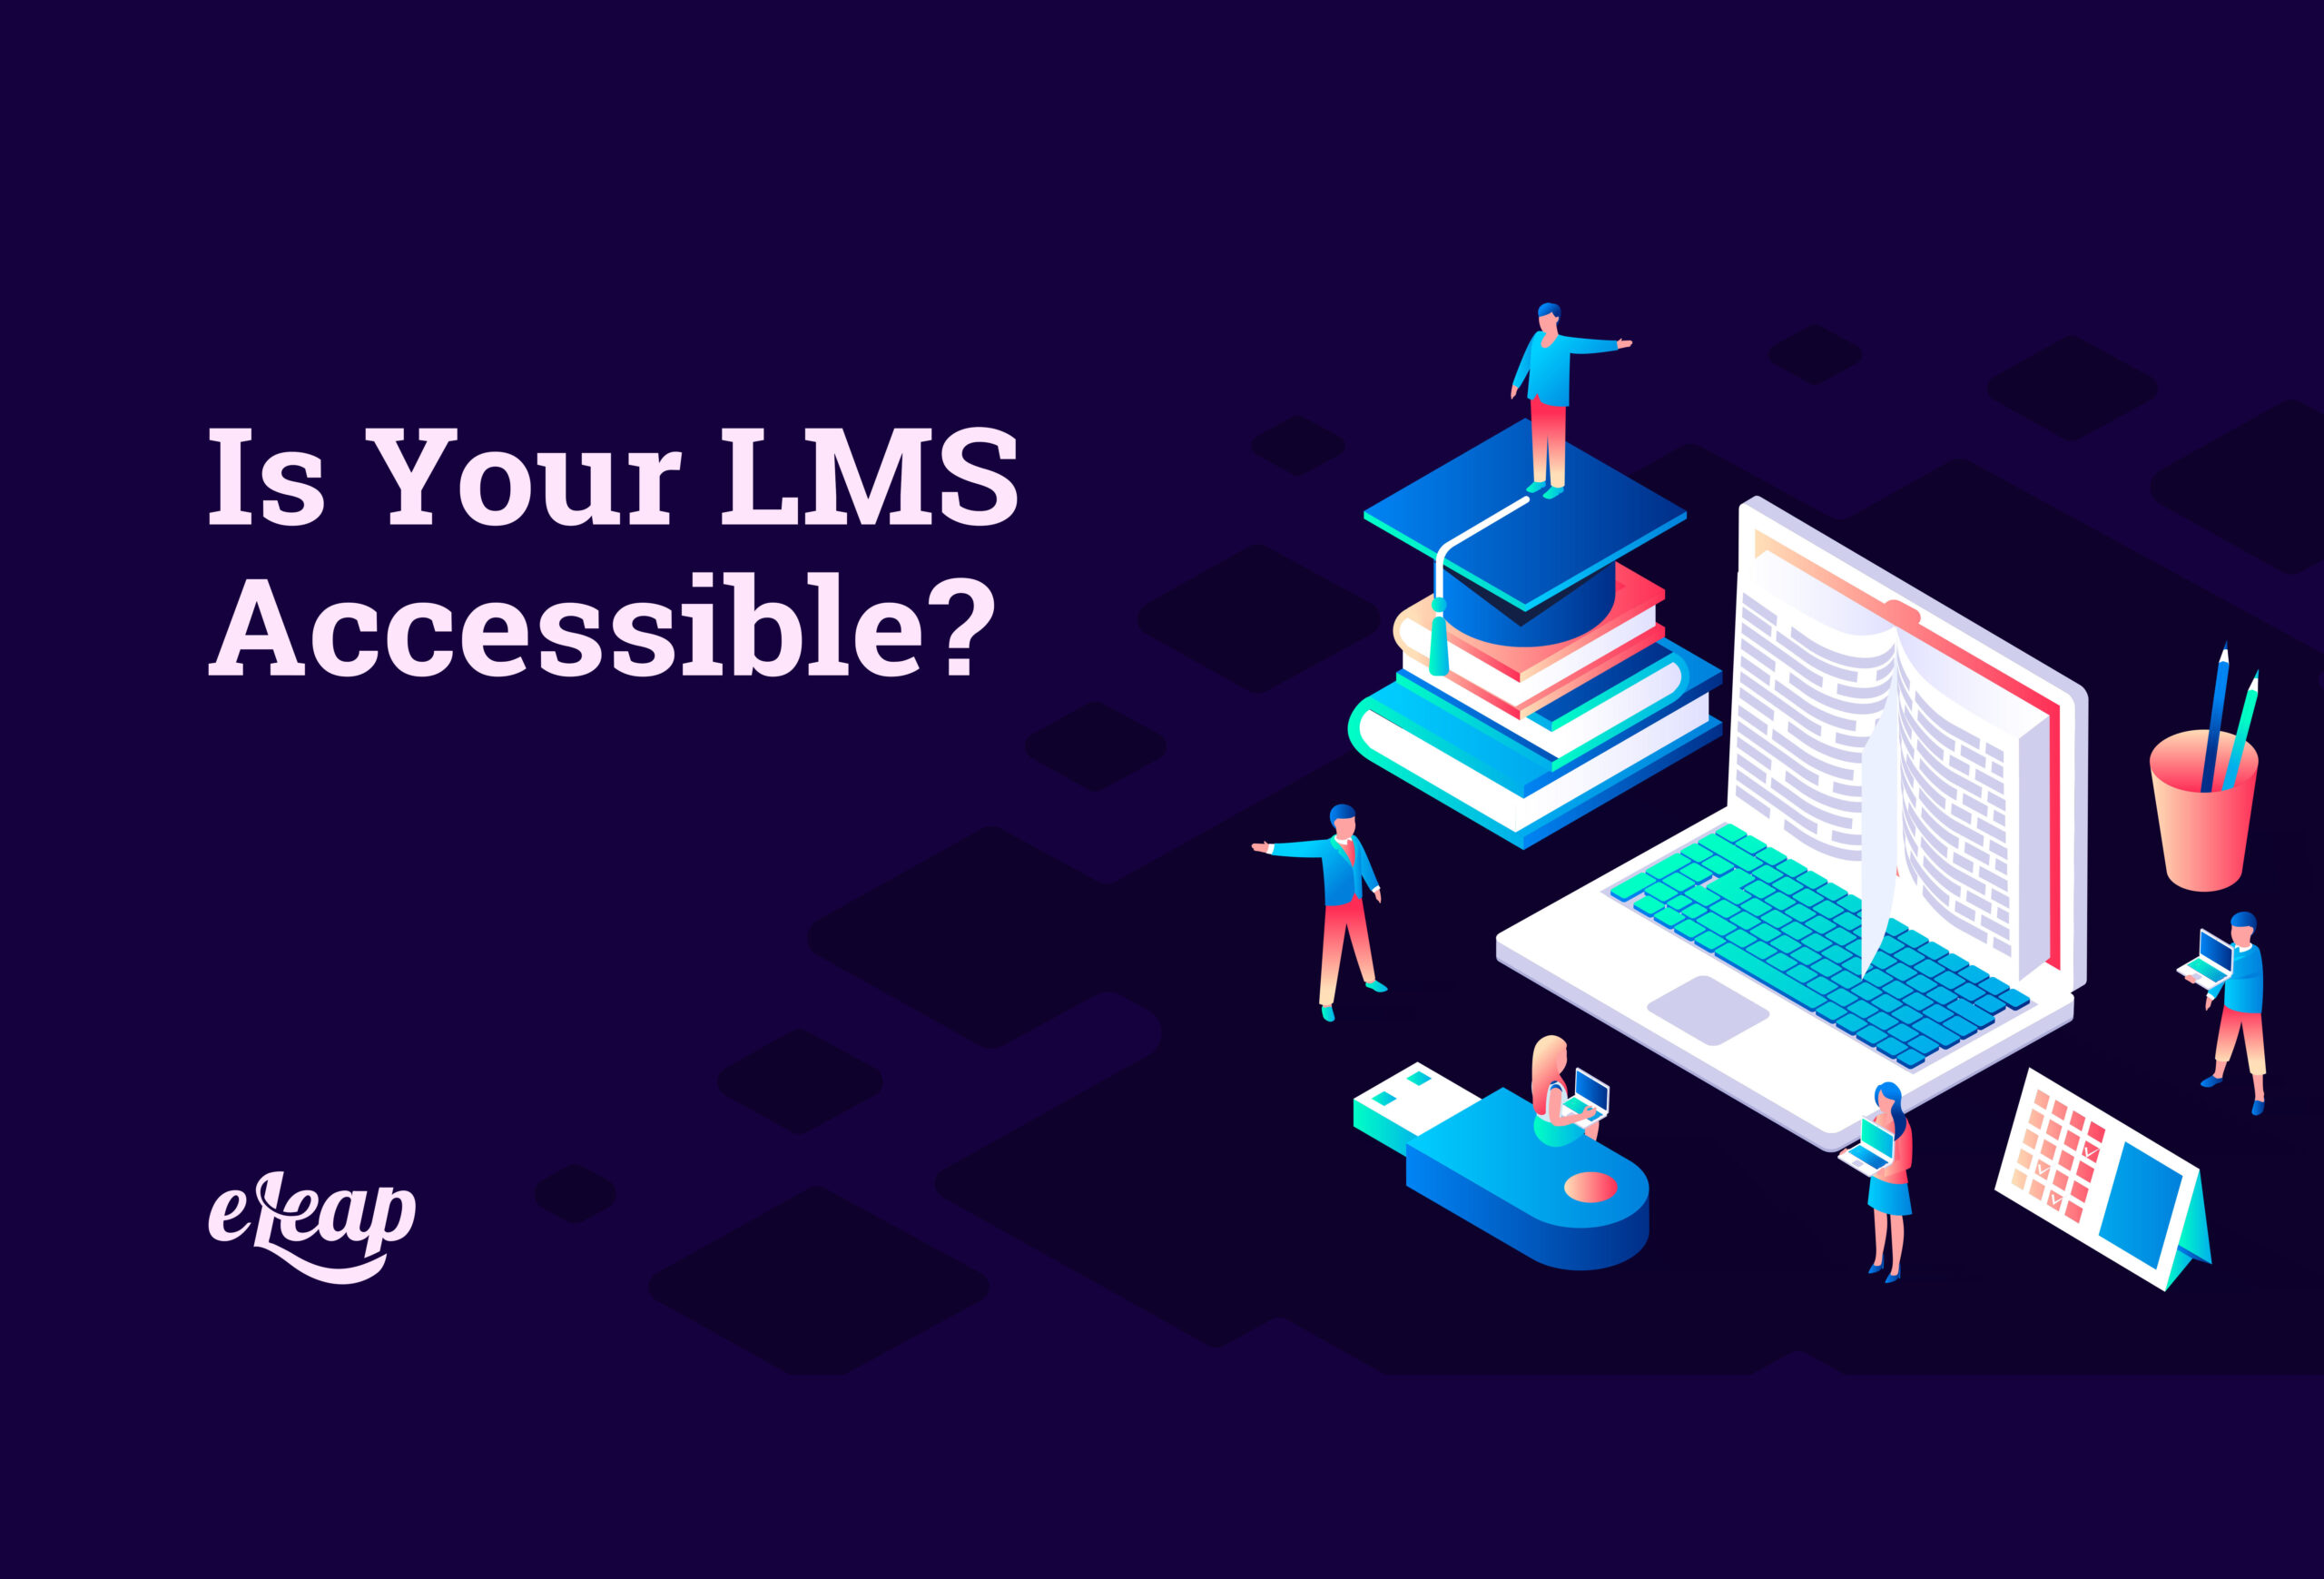 Is Your LMS Accessible?